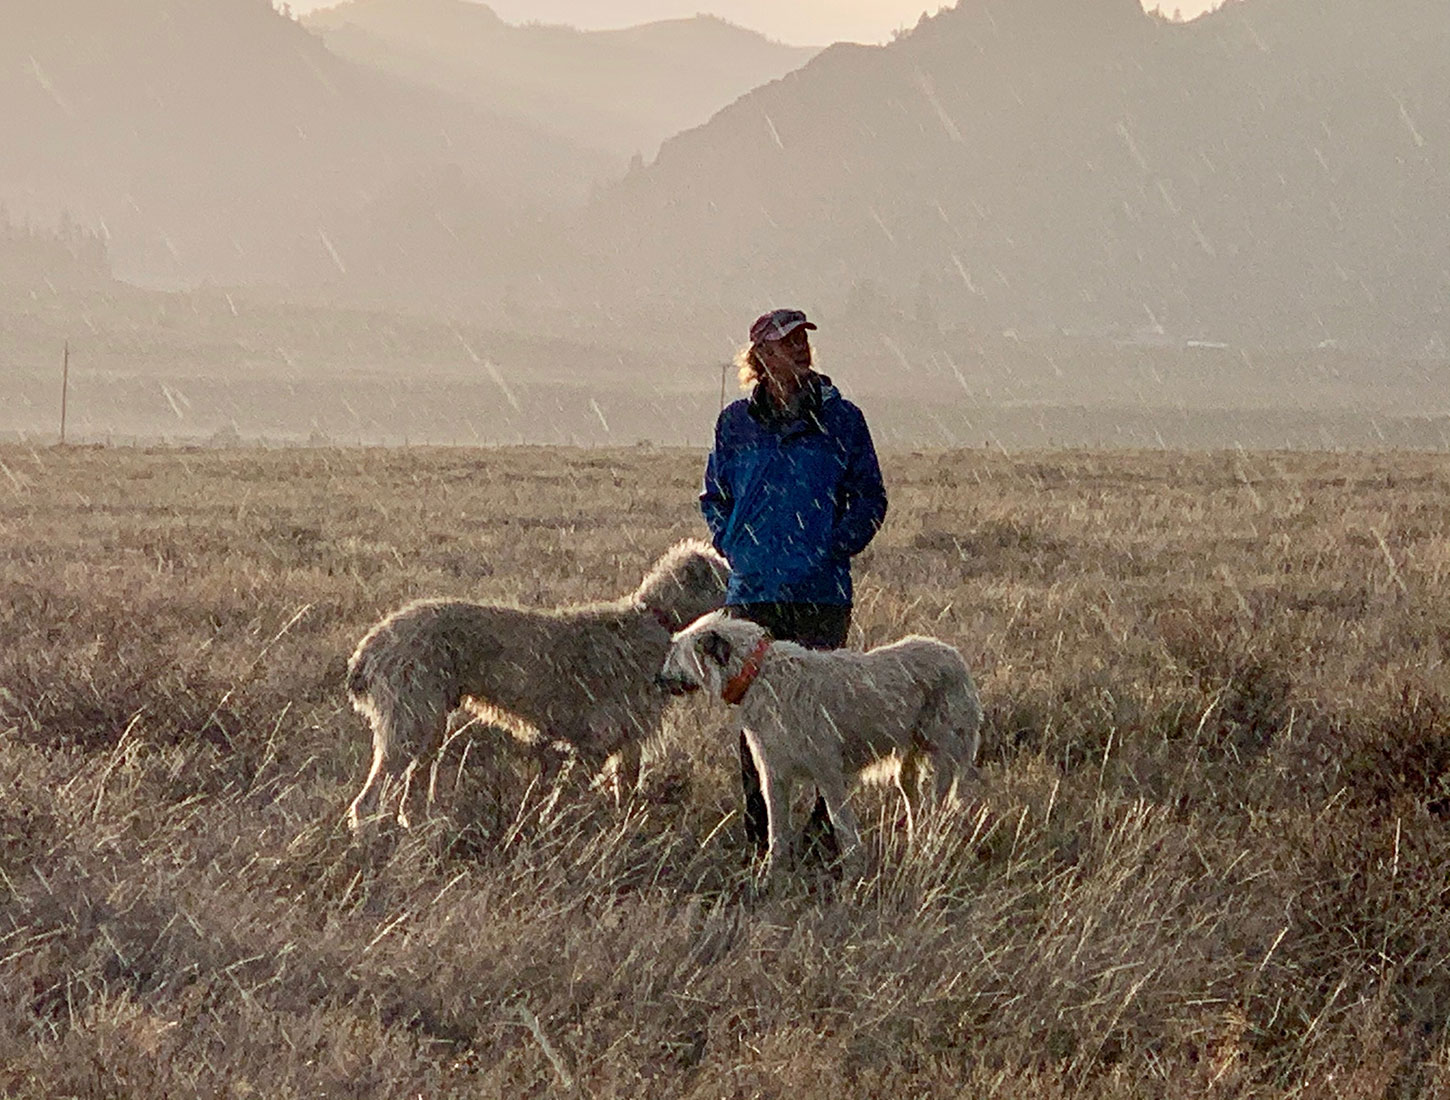 Mike with dogs in Colorado high country in the rain